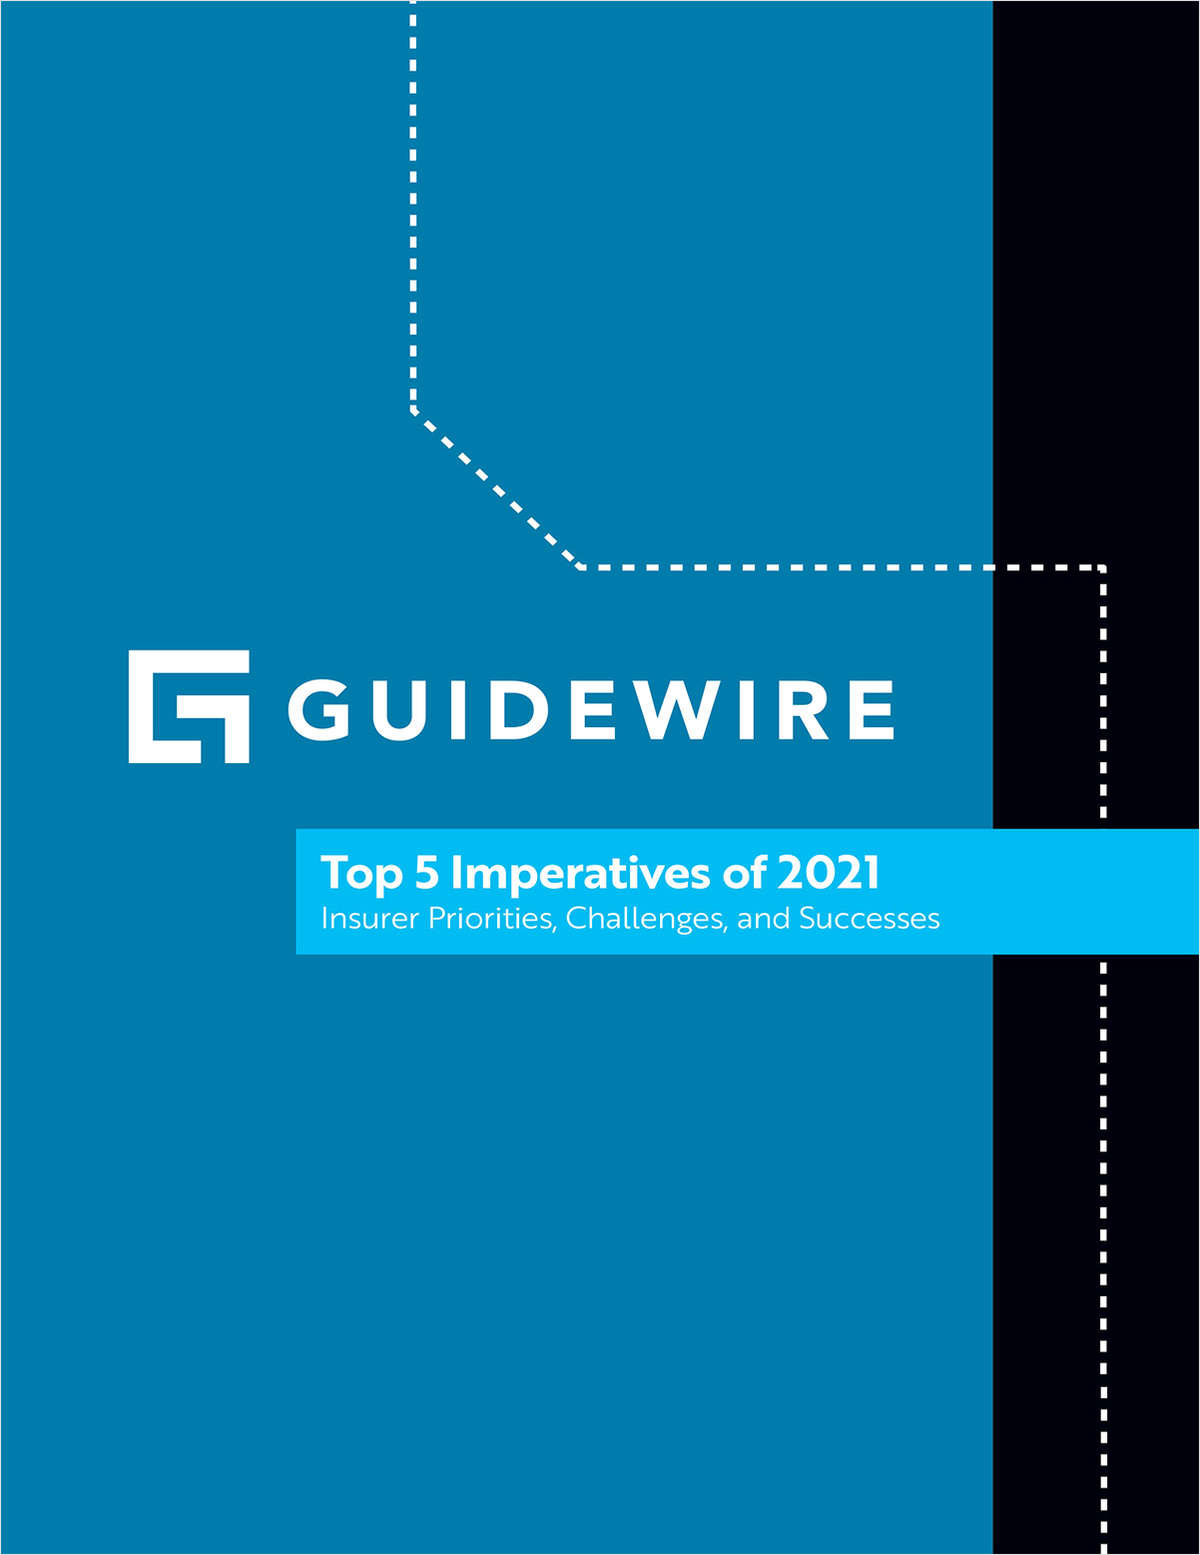 Top 5 Imperatives of 2021: Insurer Priorities, Challenges, and Successes